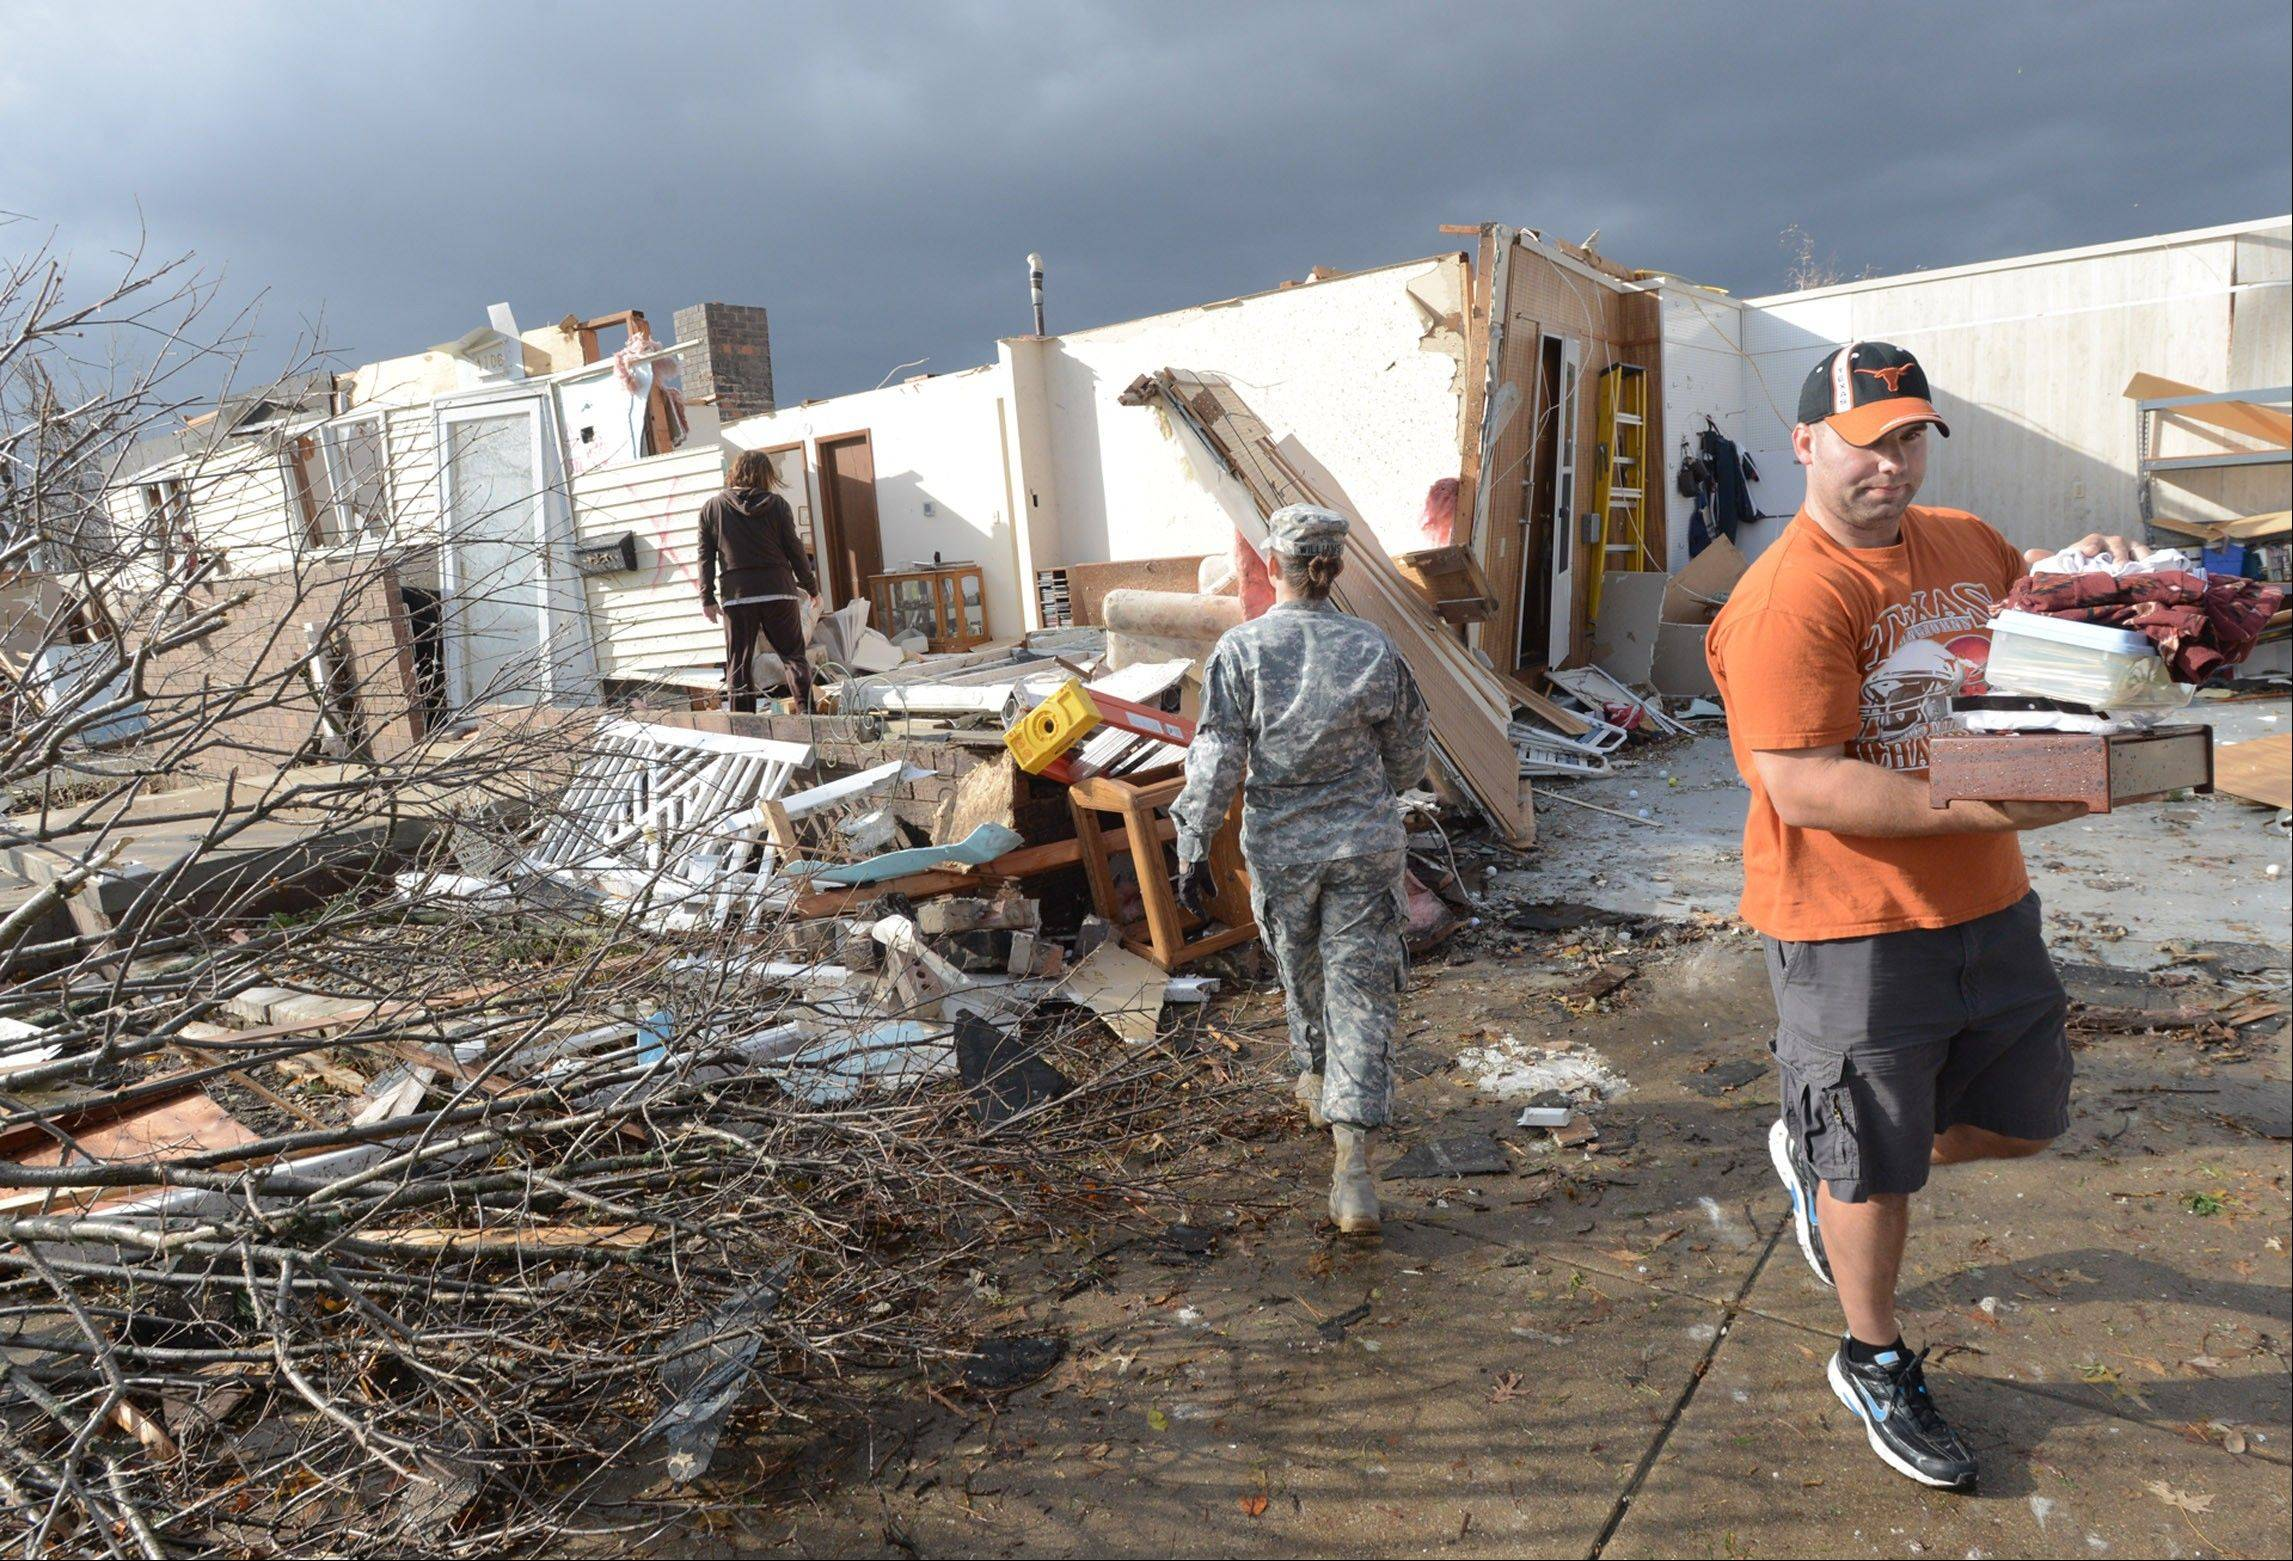 US Army National Guard Master Sergeant Katie Williams of Altamont, center, walks to a destroyed home of Barb and John Evans in the Devonshire Subdivision in Washington, Illinois as relatives rescue belongings after a tornado destroyed several homes on Sunday, Nov. 17, 2013.